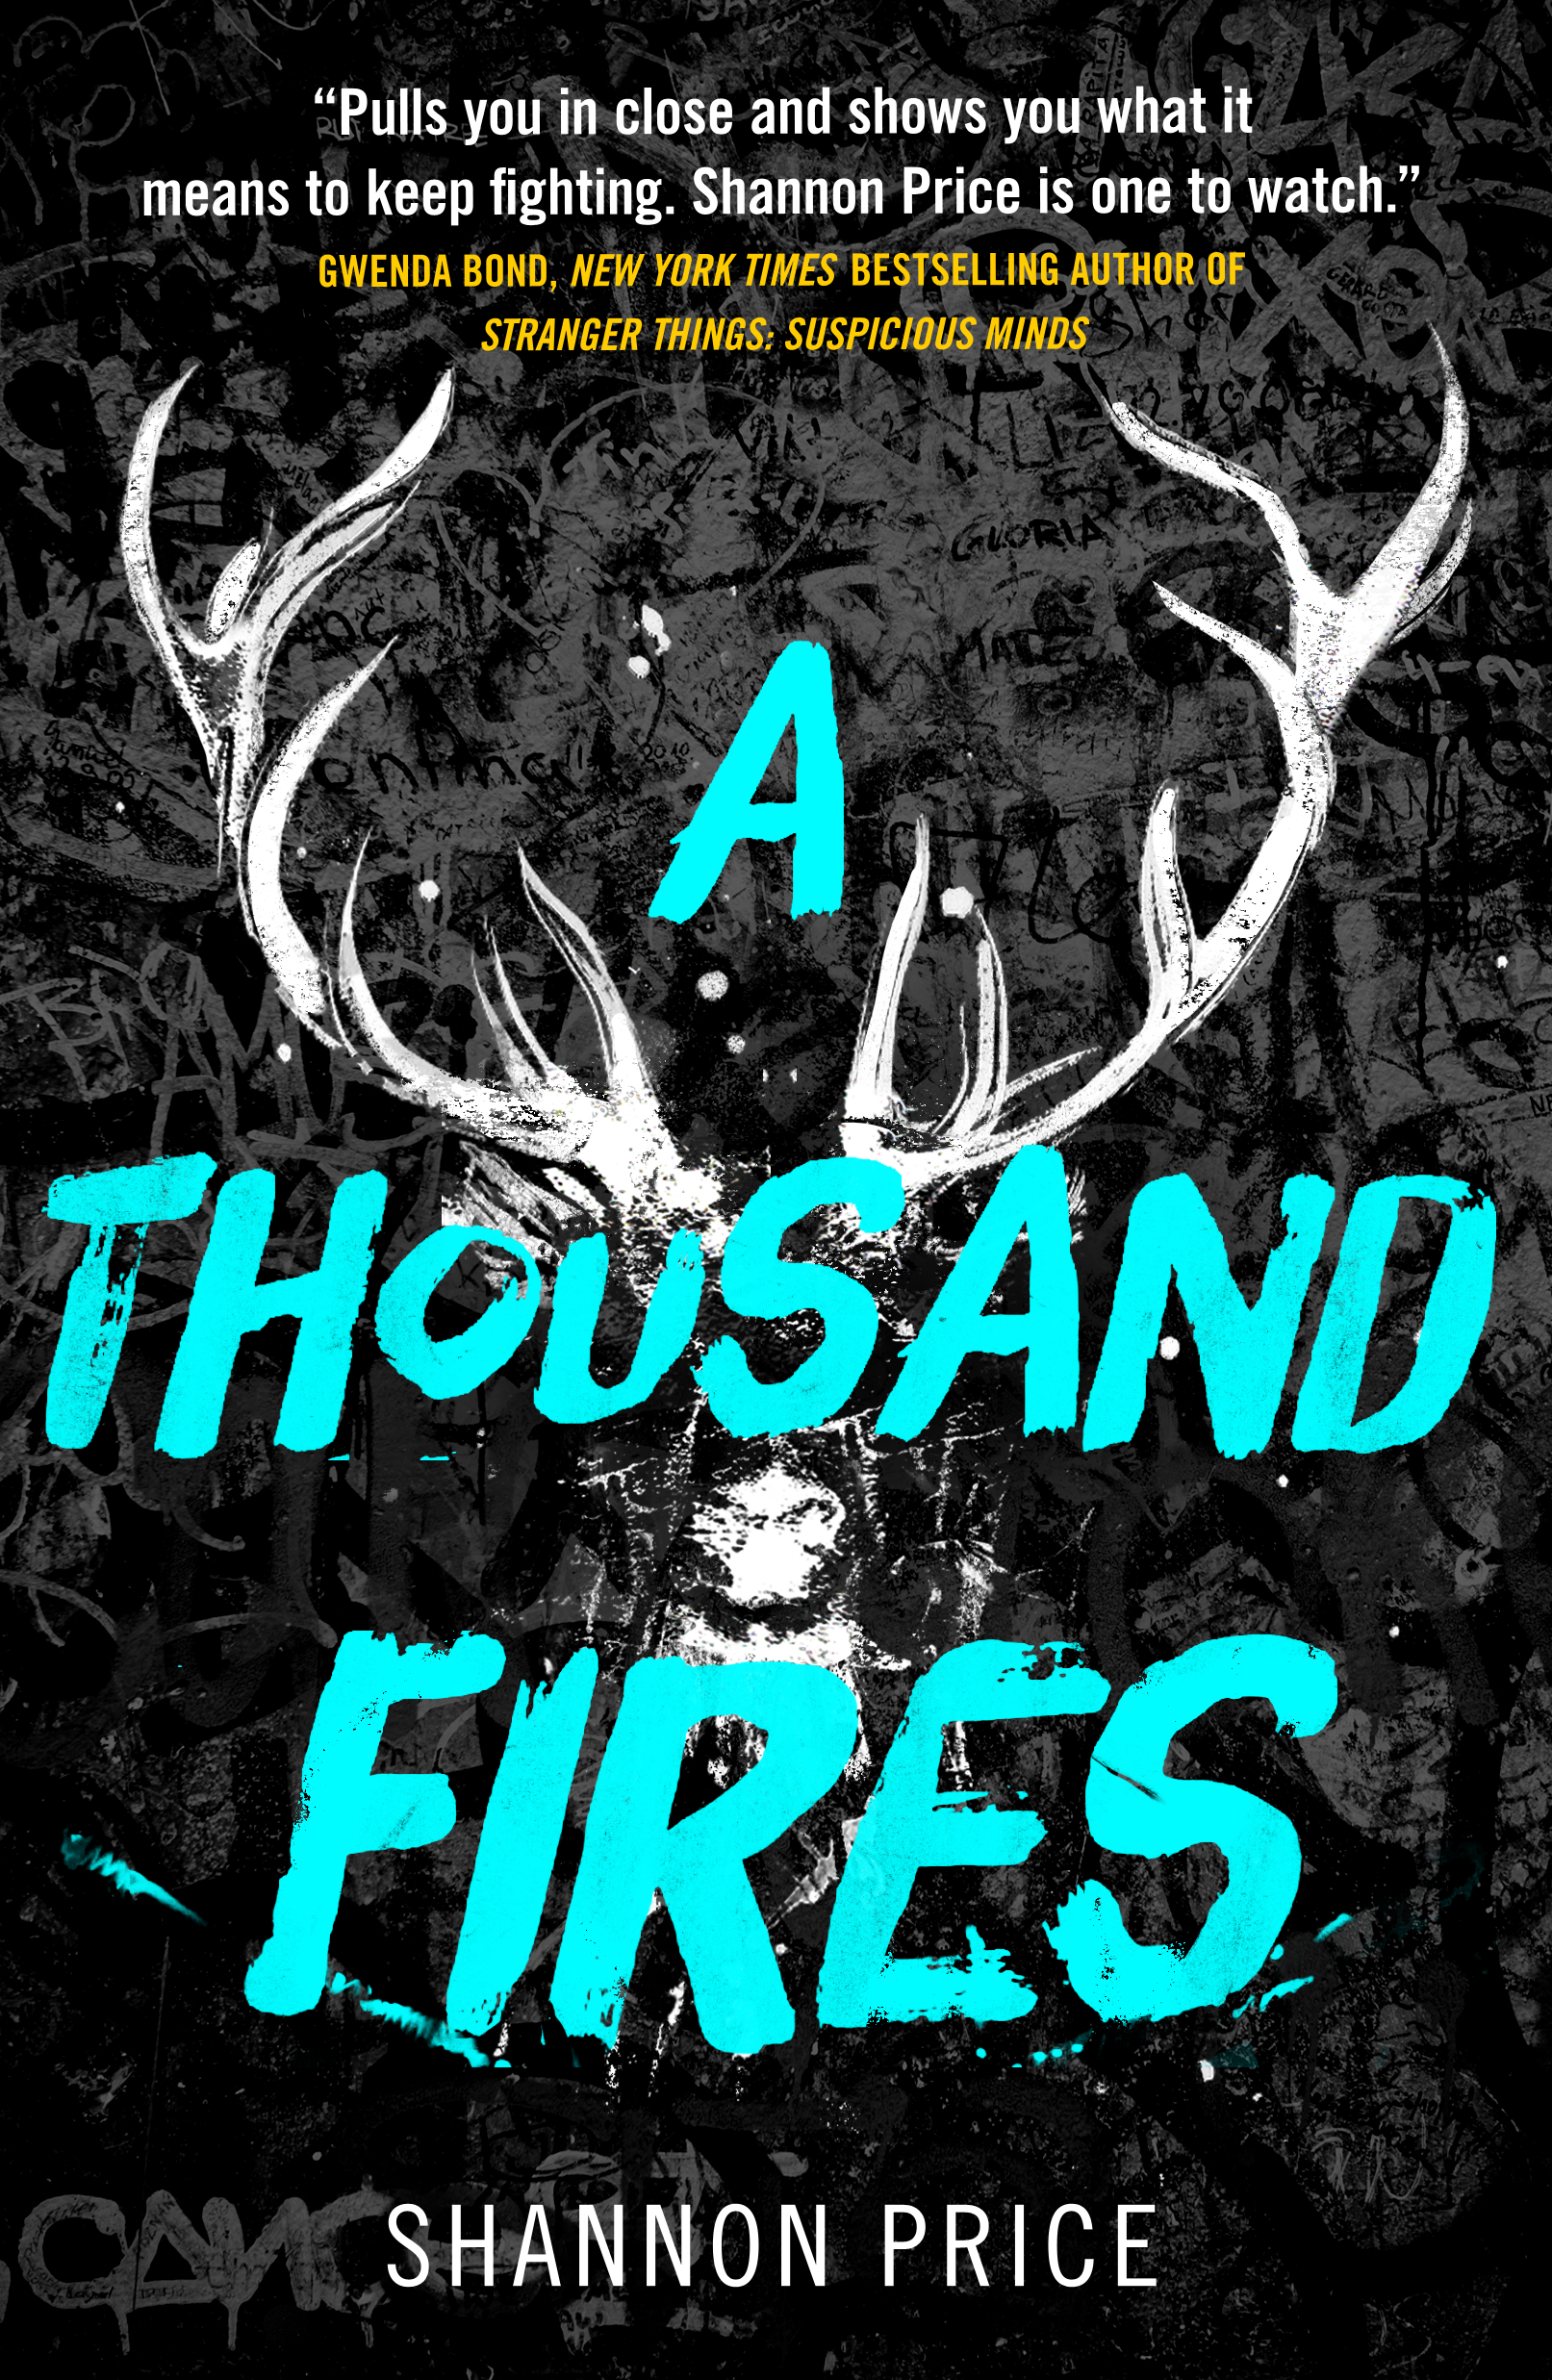 Early praise for A THOUSAND FIRES… - Kirkus calls A THOUSAND FIRES, a